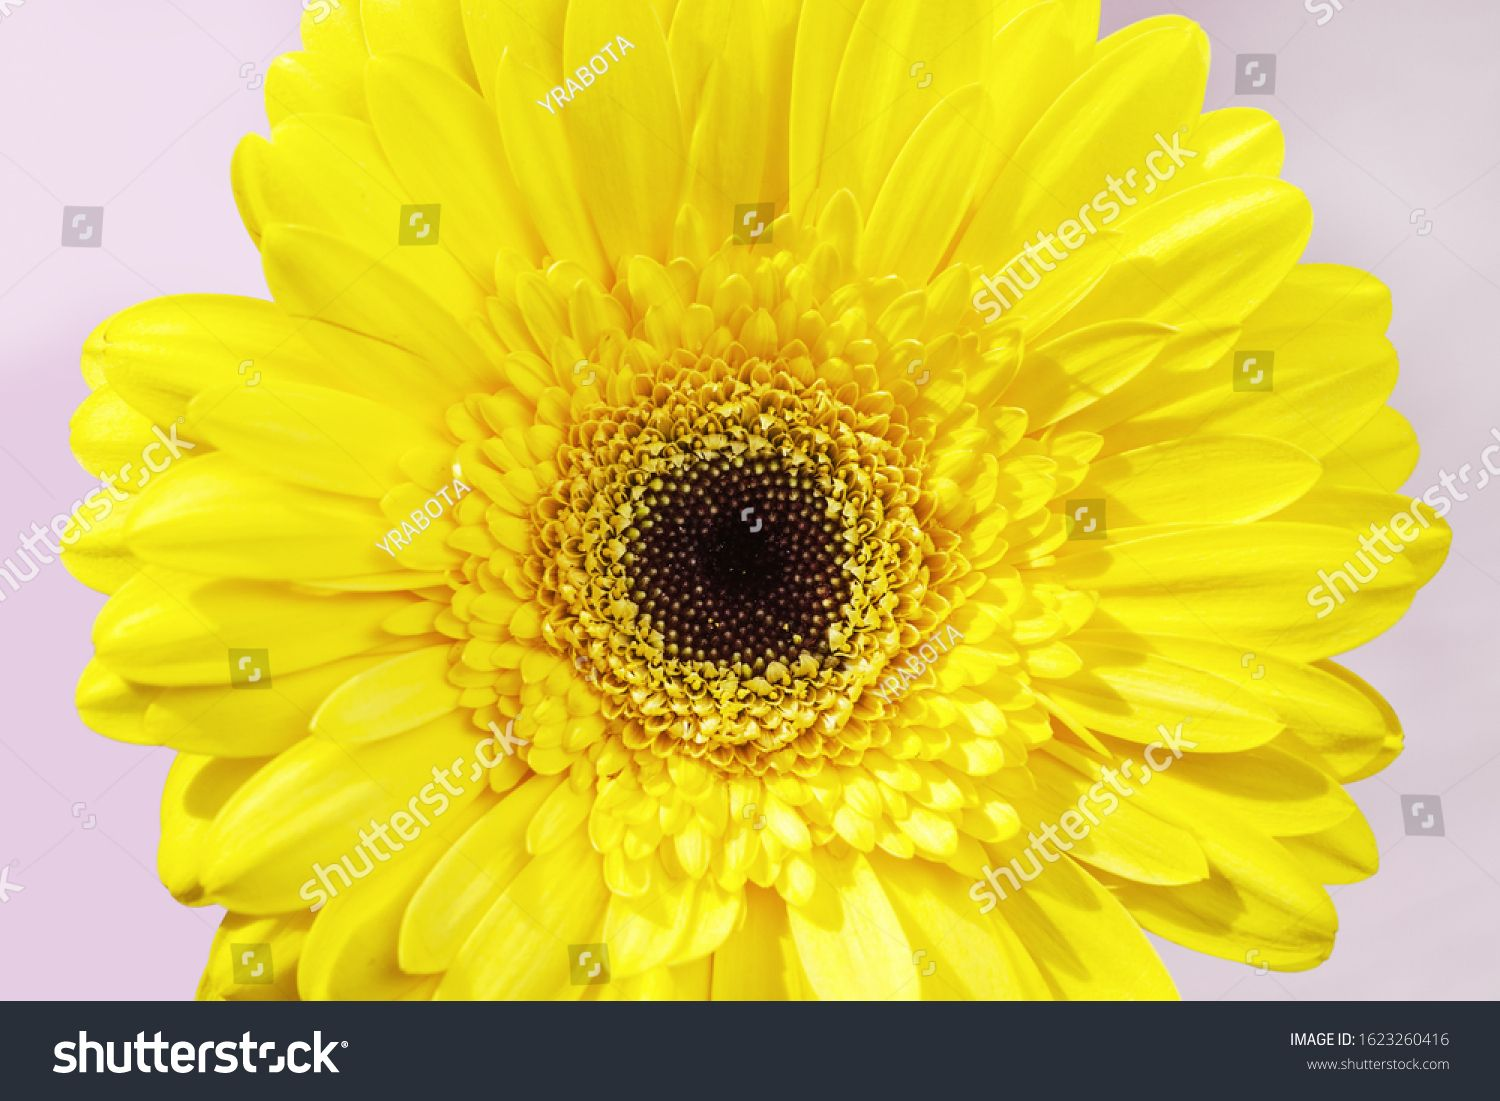 Close Up Bud Gerbera Natural Flower With Yellow Colored Petals Macro Of Blossom Flower Beauty Of Nature Ad Sponsored Na Gerbera Blossom Flower Flowers